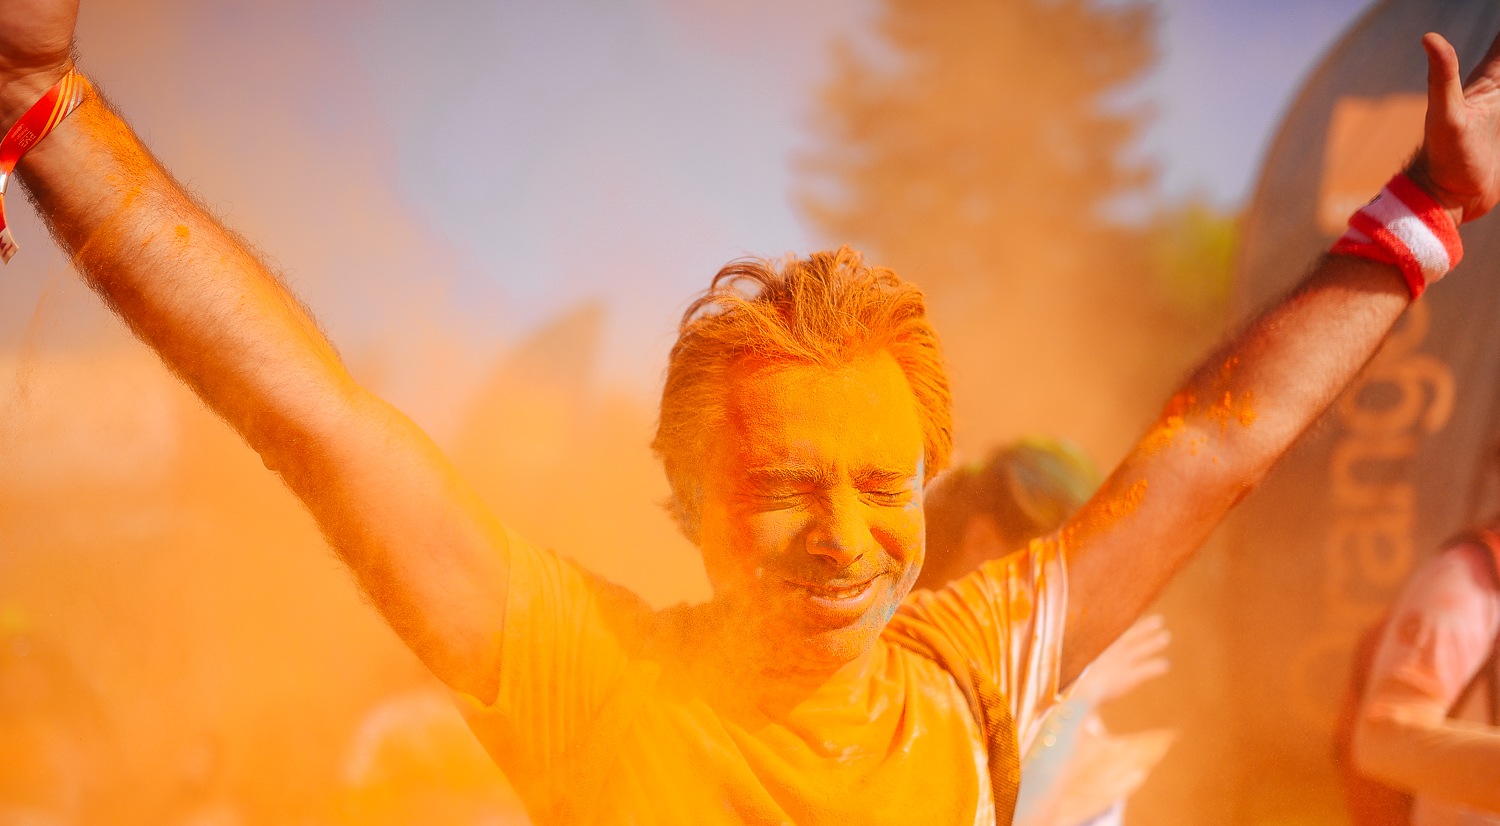 Galerie foto: The Color Run 2017 în 40 de fotografii